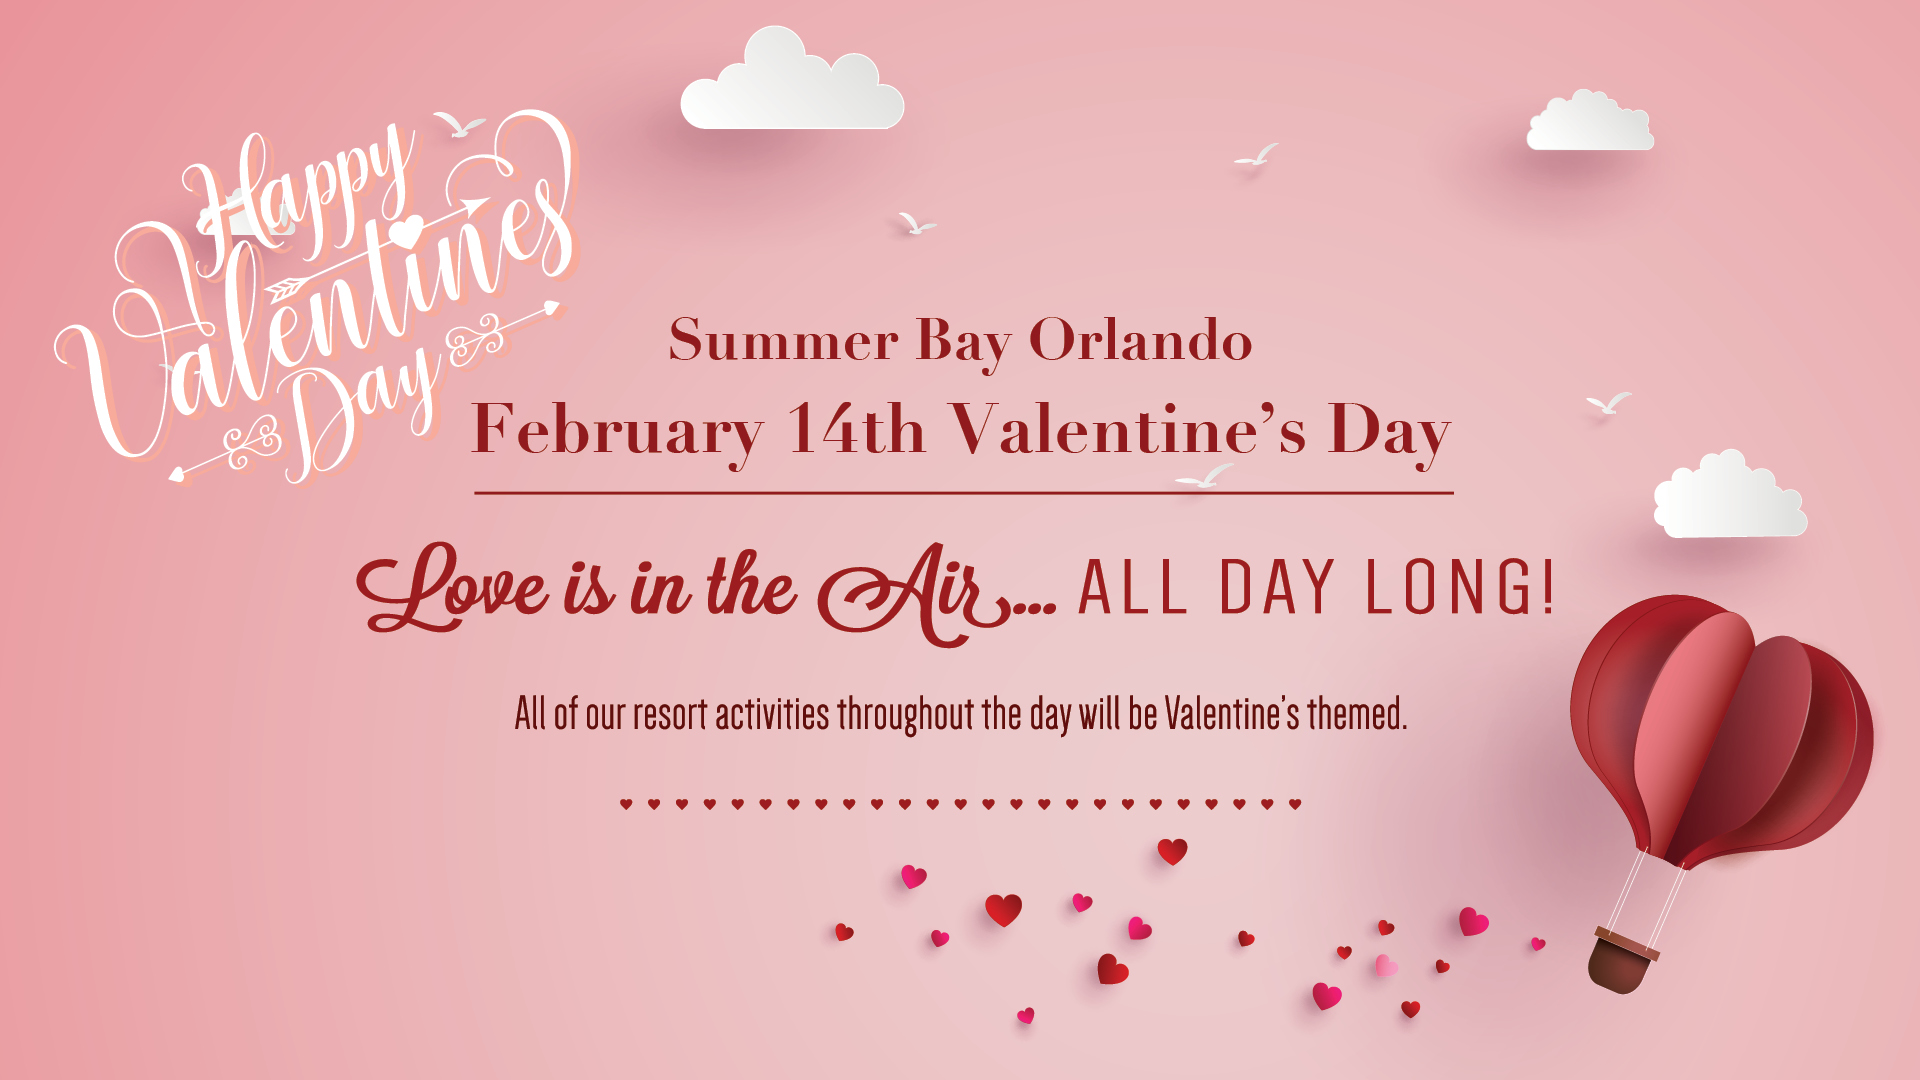 summer bay orlando valentines day flier